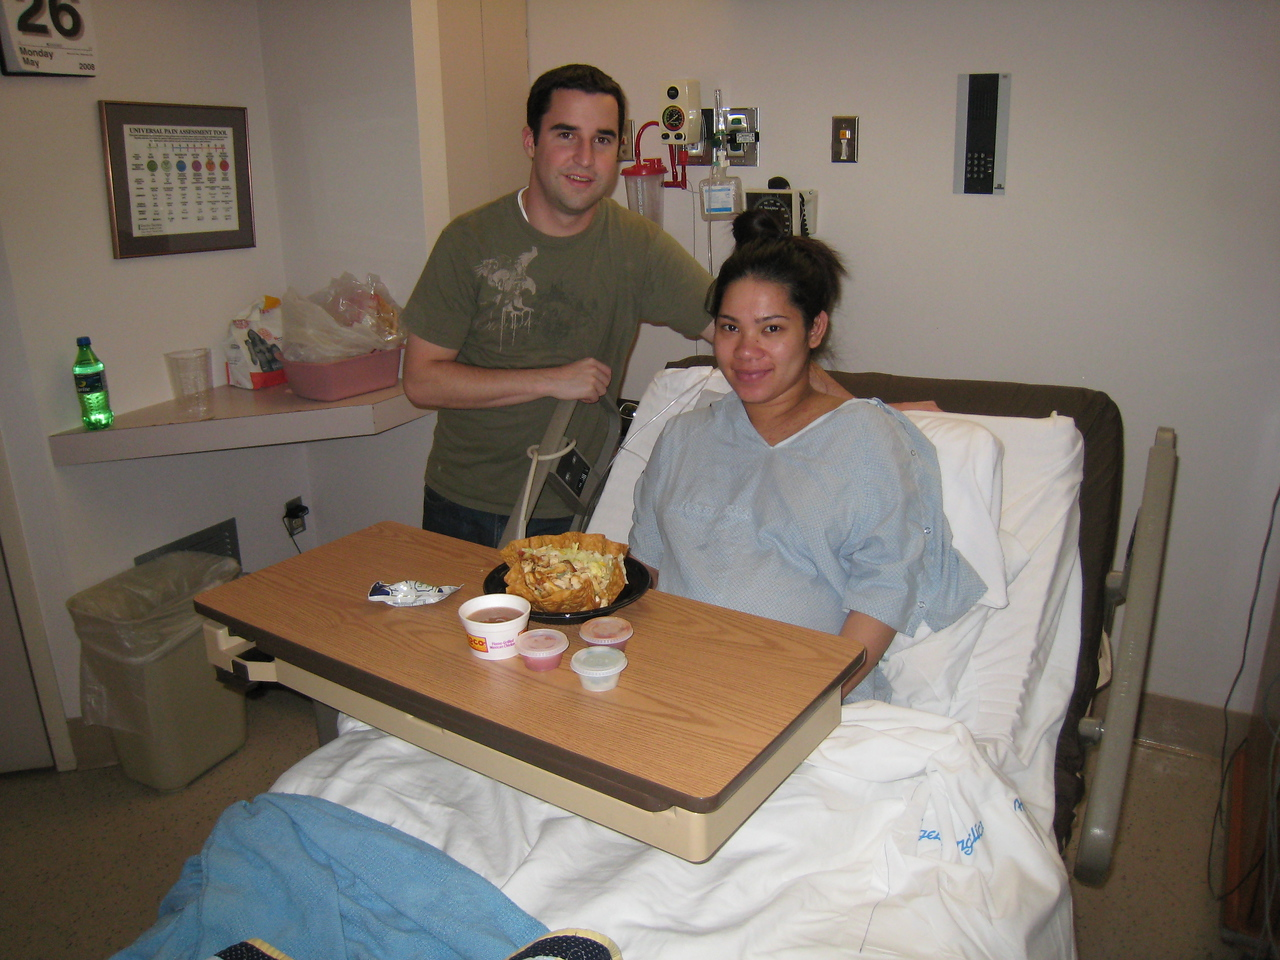 Nick and Karin in the hospital